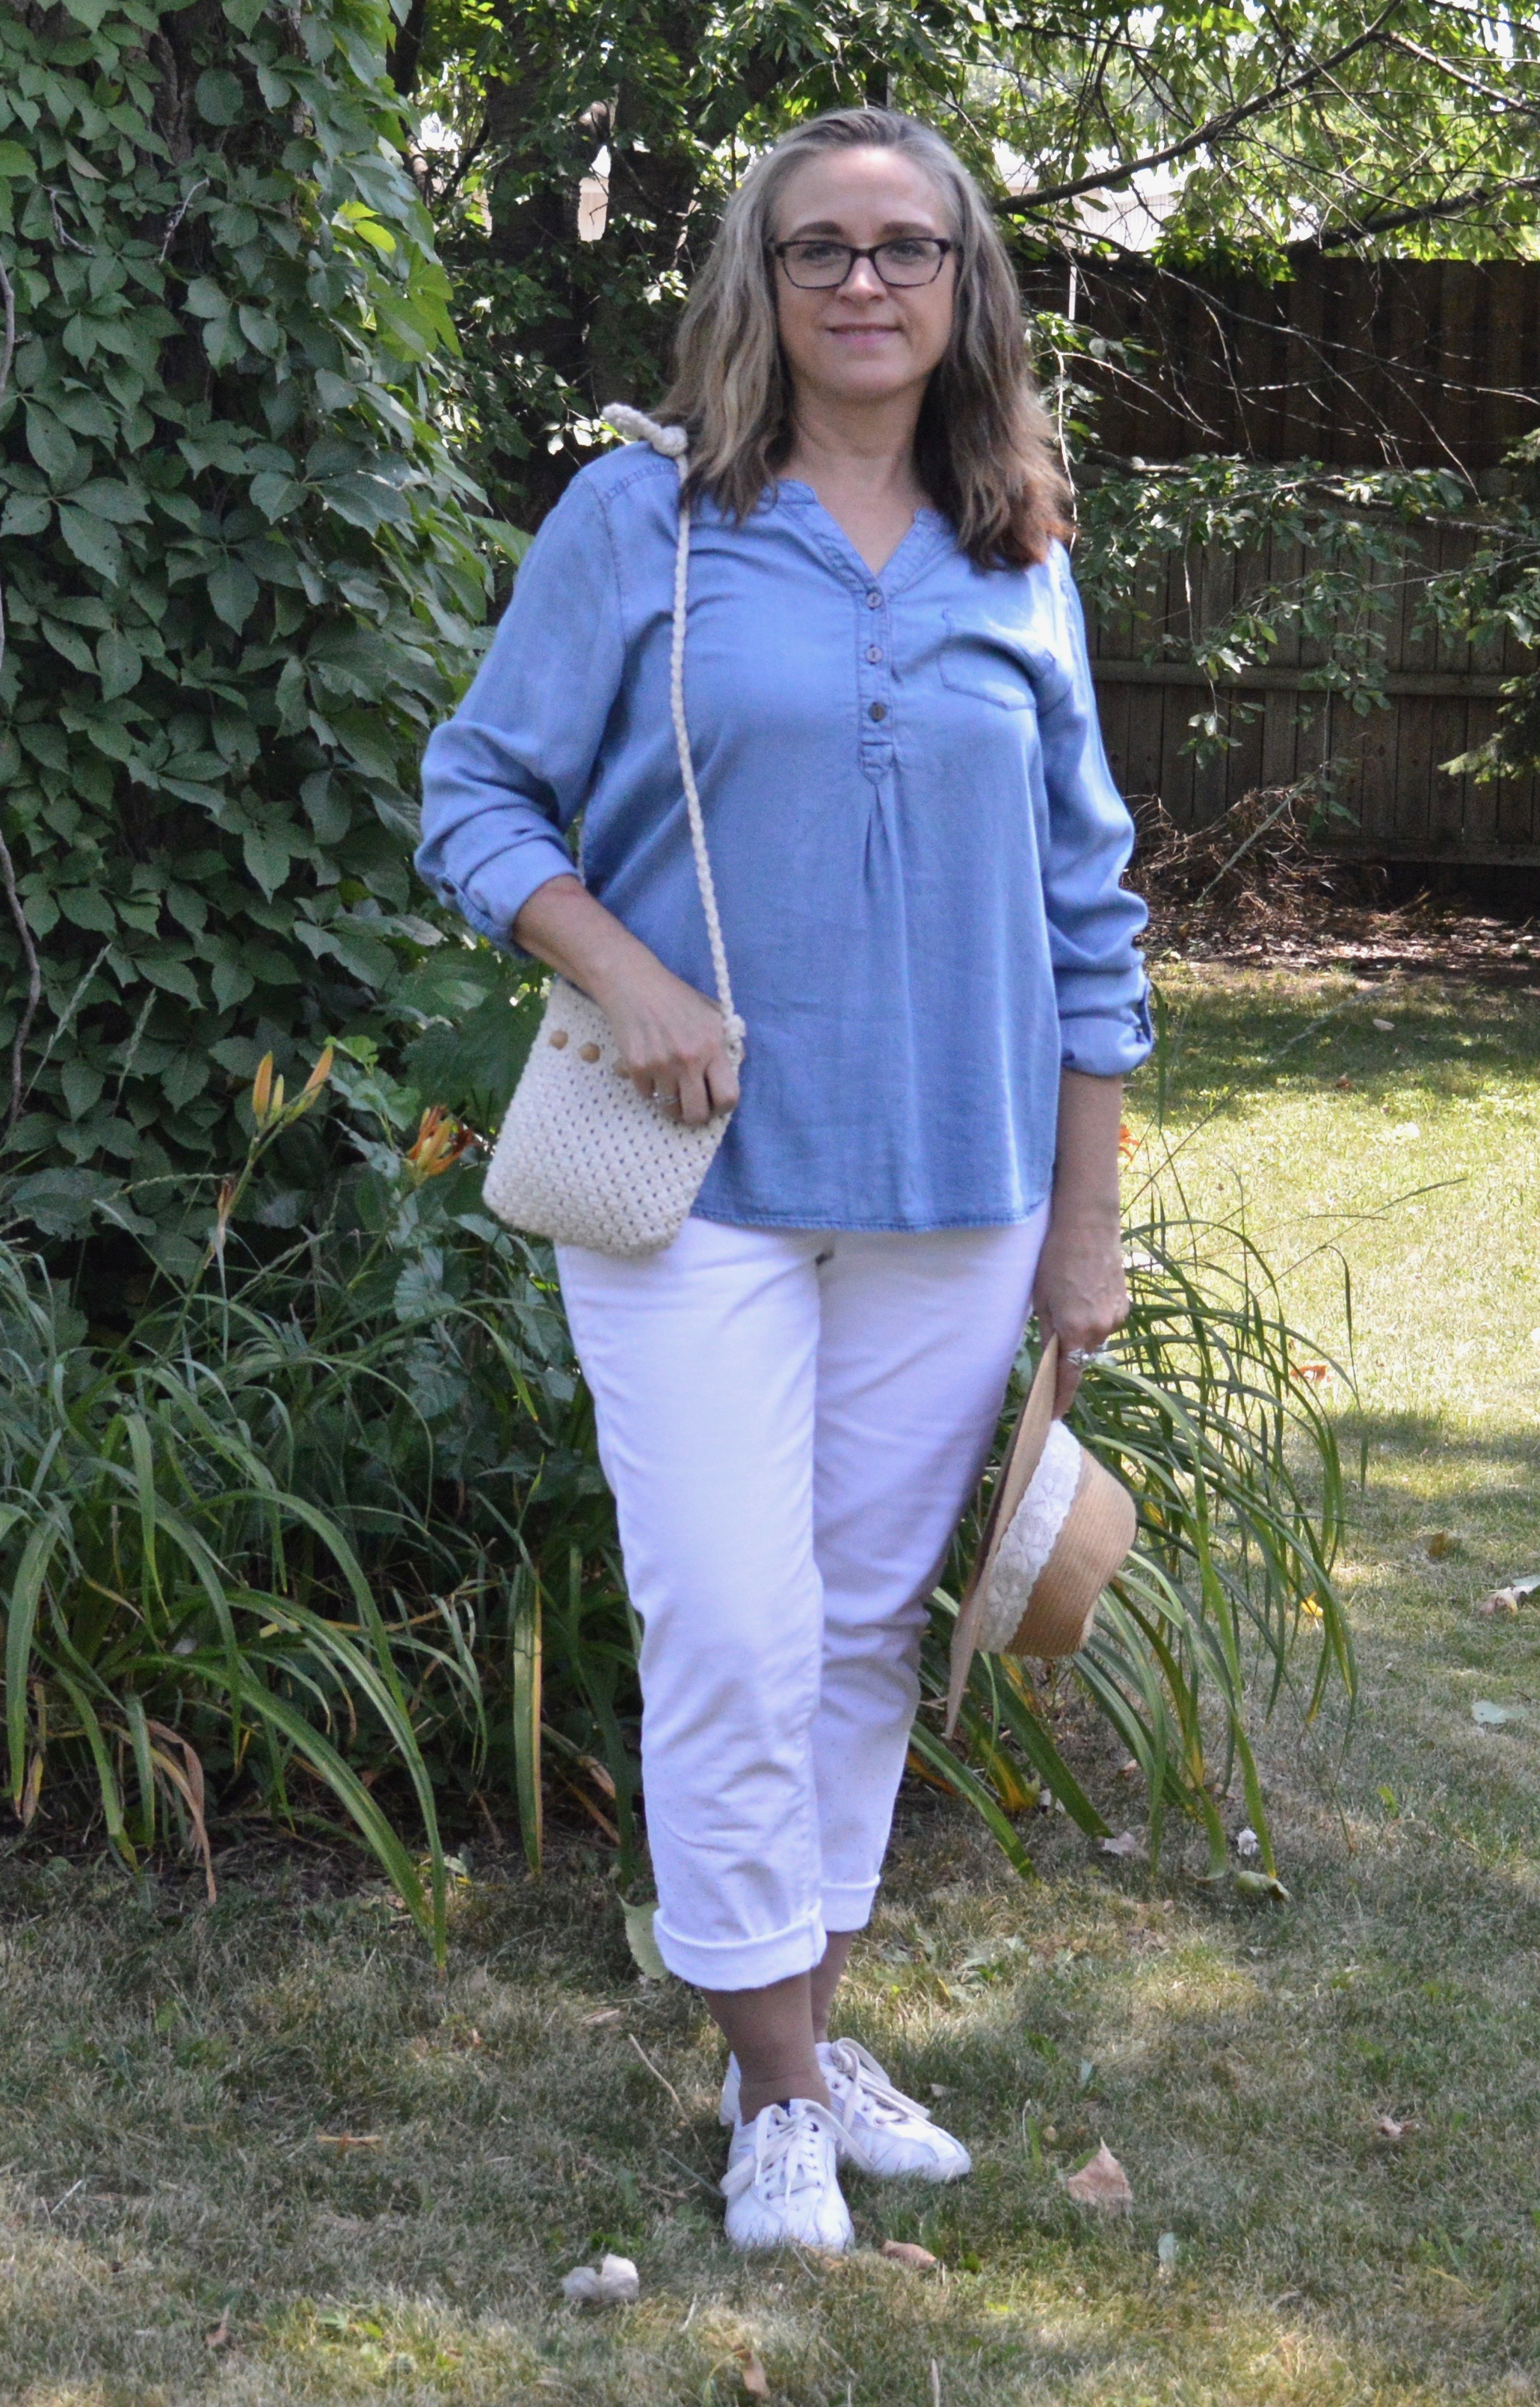 Outfit inspiration - chambray top and white pants